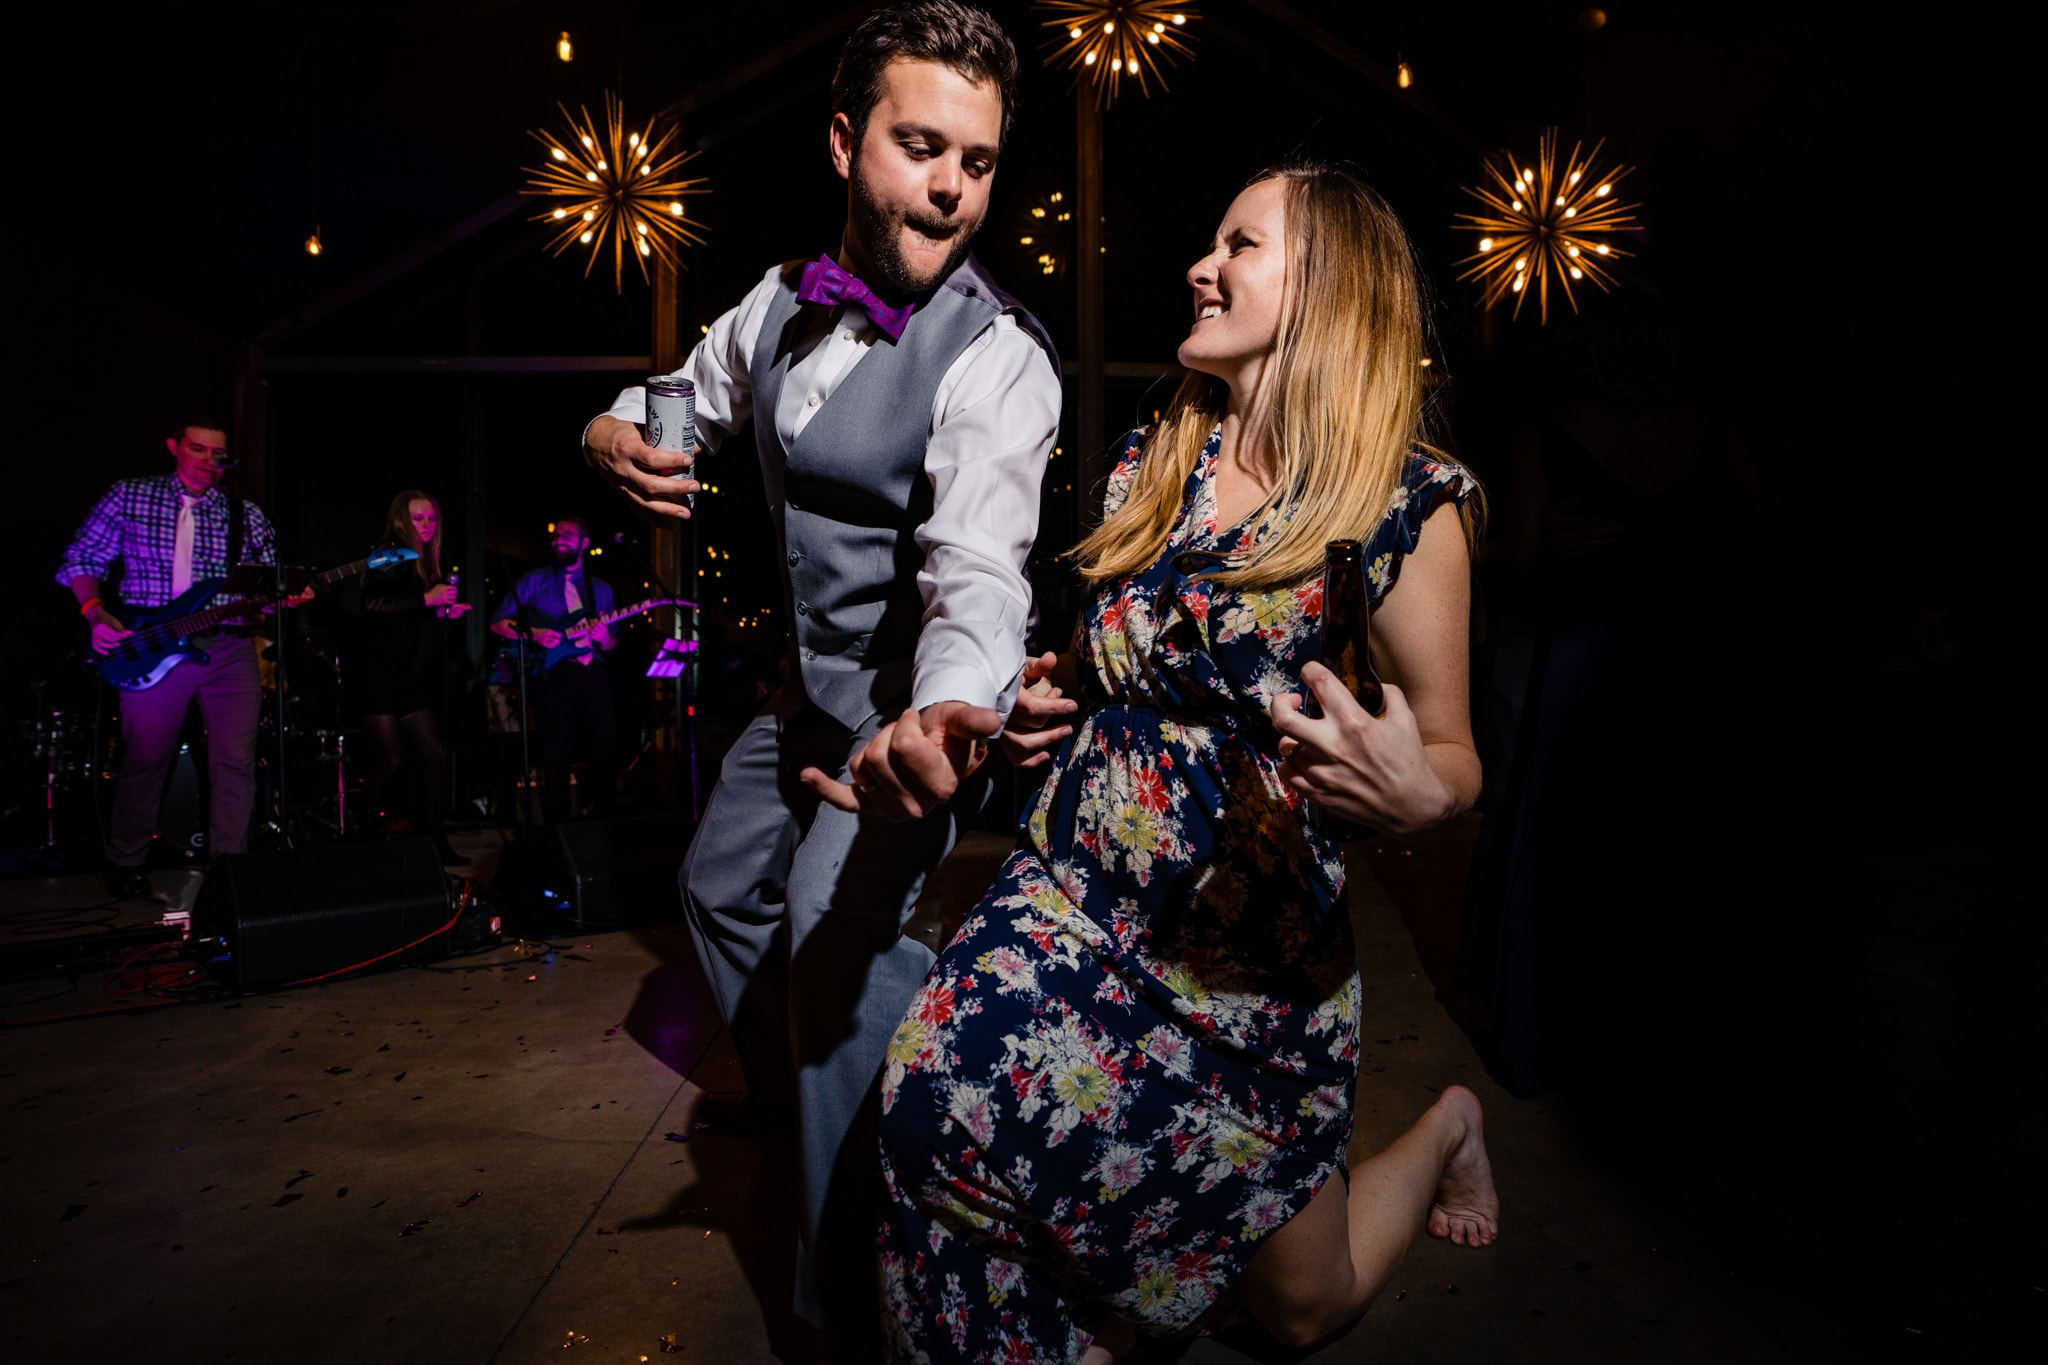 Two wedding guests playing air guitar on dance floor